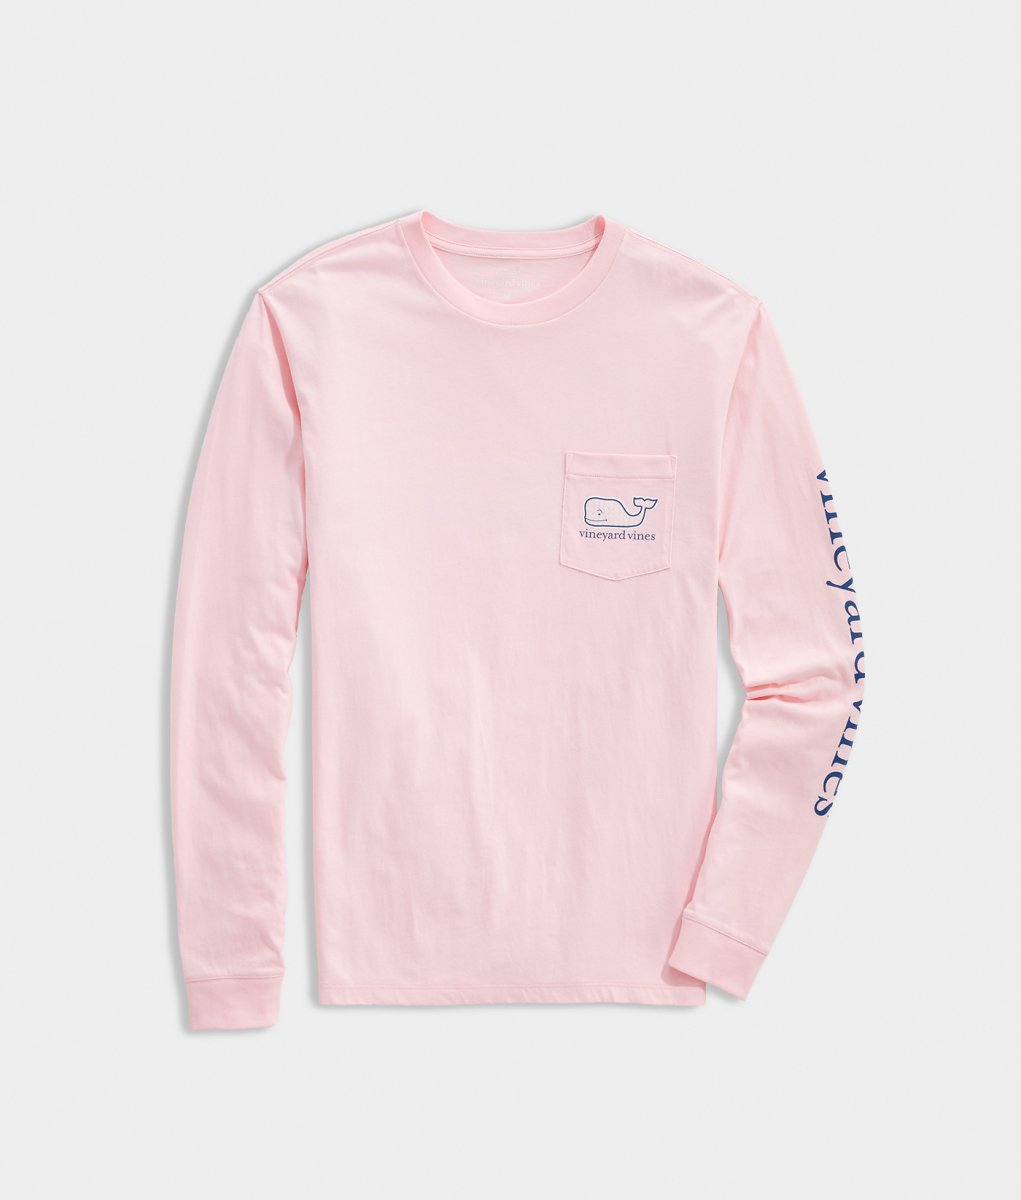 Adult 2020 Breast Cancer Awareness Whale Long-Sleeve Pocket Tee